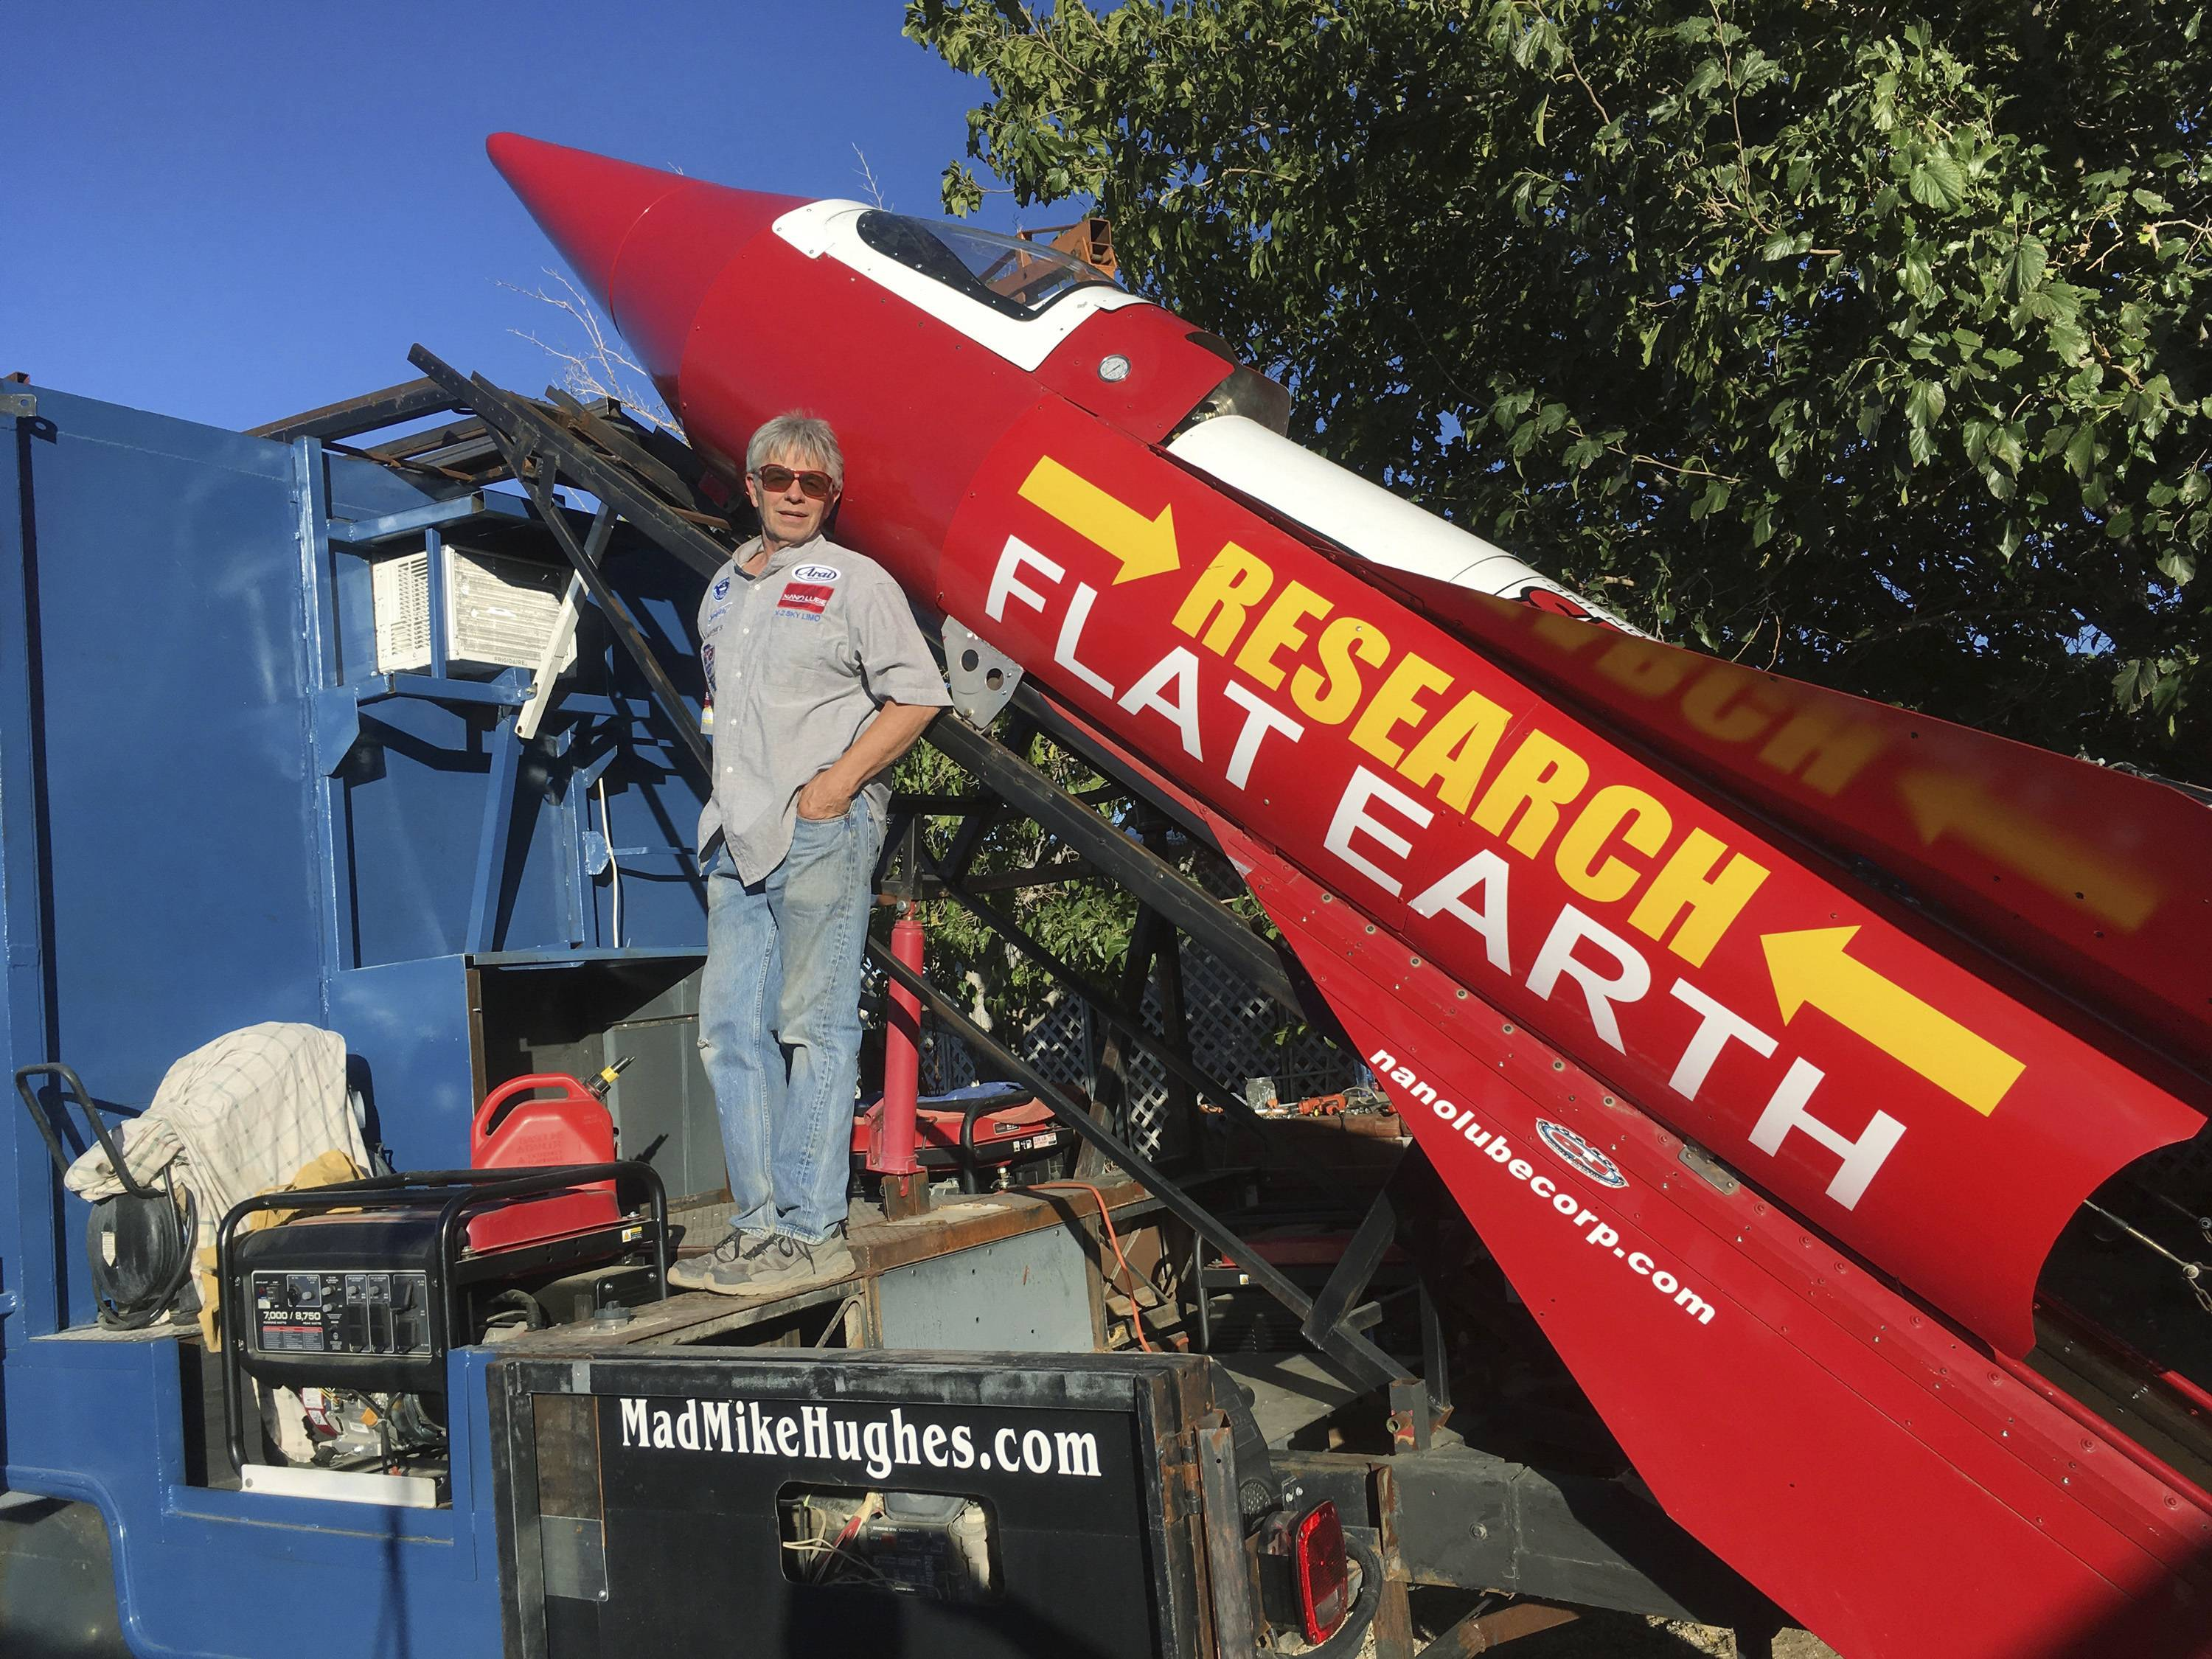 Daredevil/limousine driver Mad Mike Hughes is shown with his steam-powered rocket constructed out of salvage parts on a five-acre property that he leases in Apple Valley, California. Hughes plans to launch his homemade contraption near the ghost town of Amboy, California, at a speed of roughly 500 miles-per-hour.